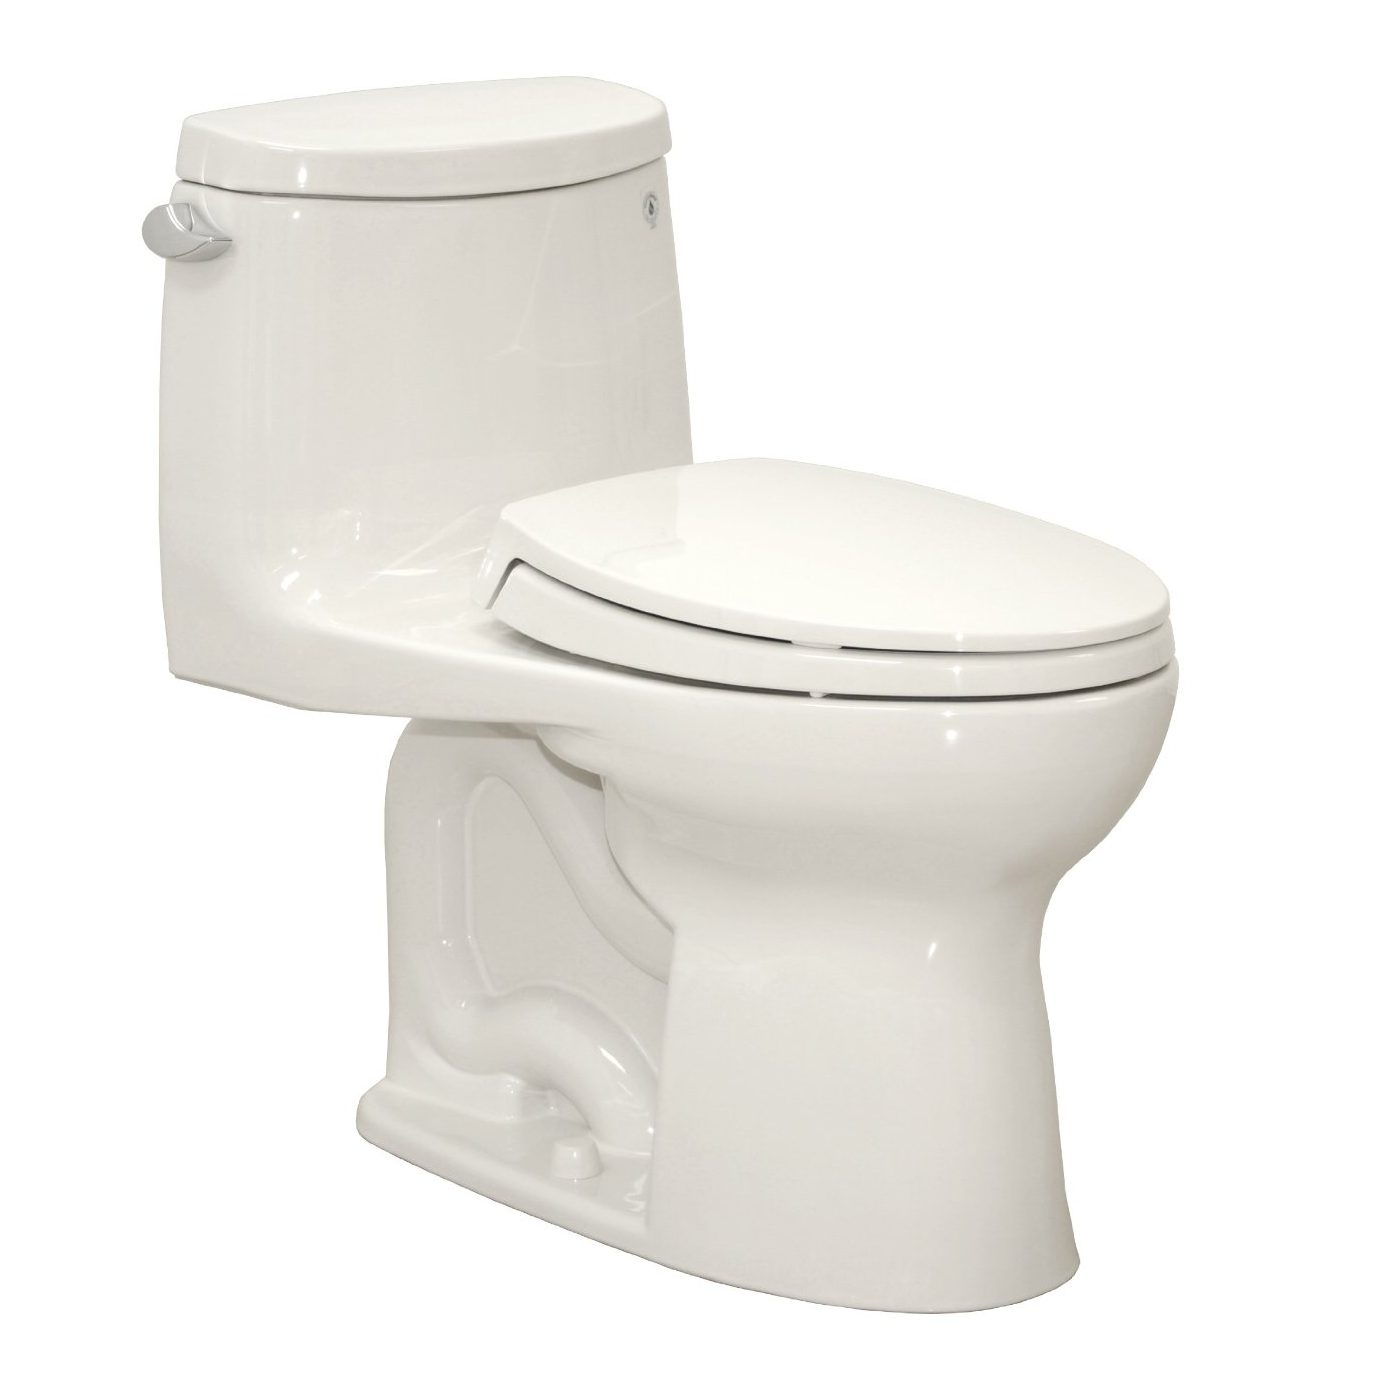 Best toilet on the market reviews - Toto Ultramax